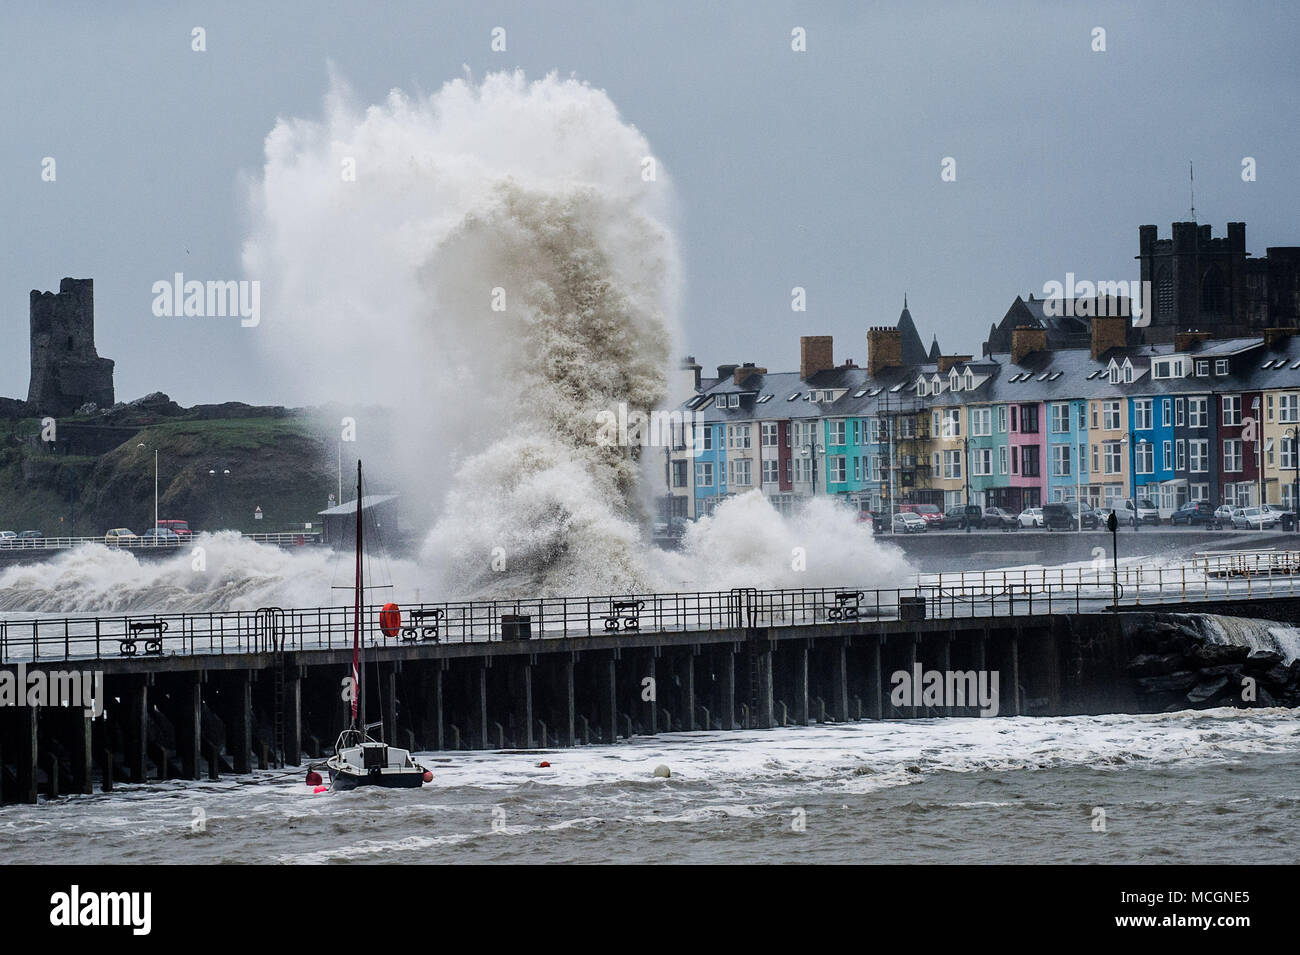 Aberystwyth Wales UK, Tuesday 17  April 2018  Strong gale force winds  from the south west, and a 5.3m high tide,  combine to generate huge waves  battering the seafront and harbour in Aberystwyth on the west coast of Wales this morning   photo © Keith Morris / Alamy Live News Stock Photo